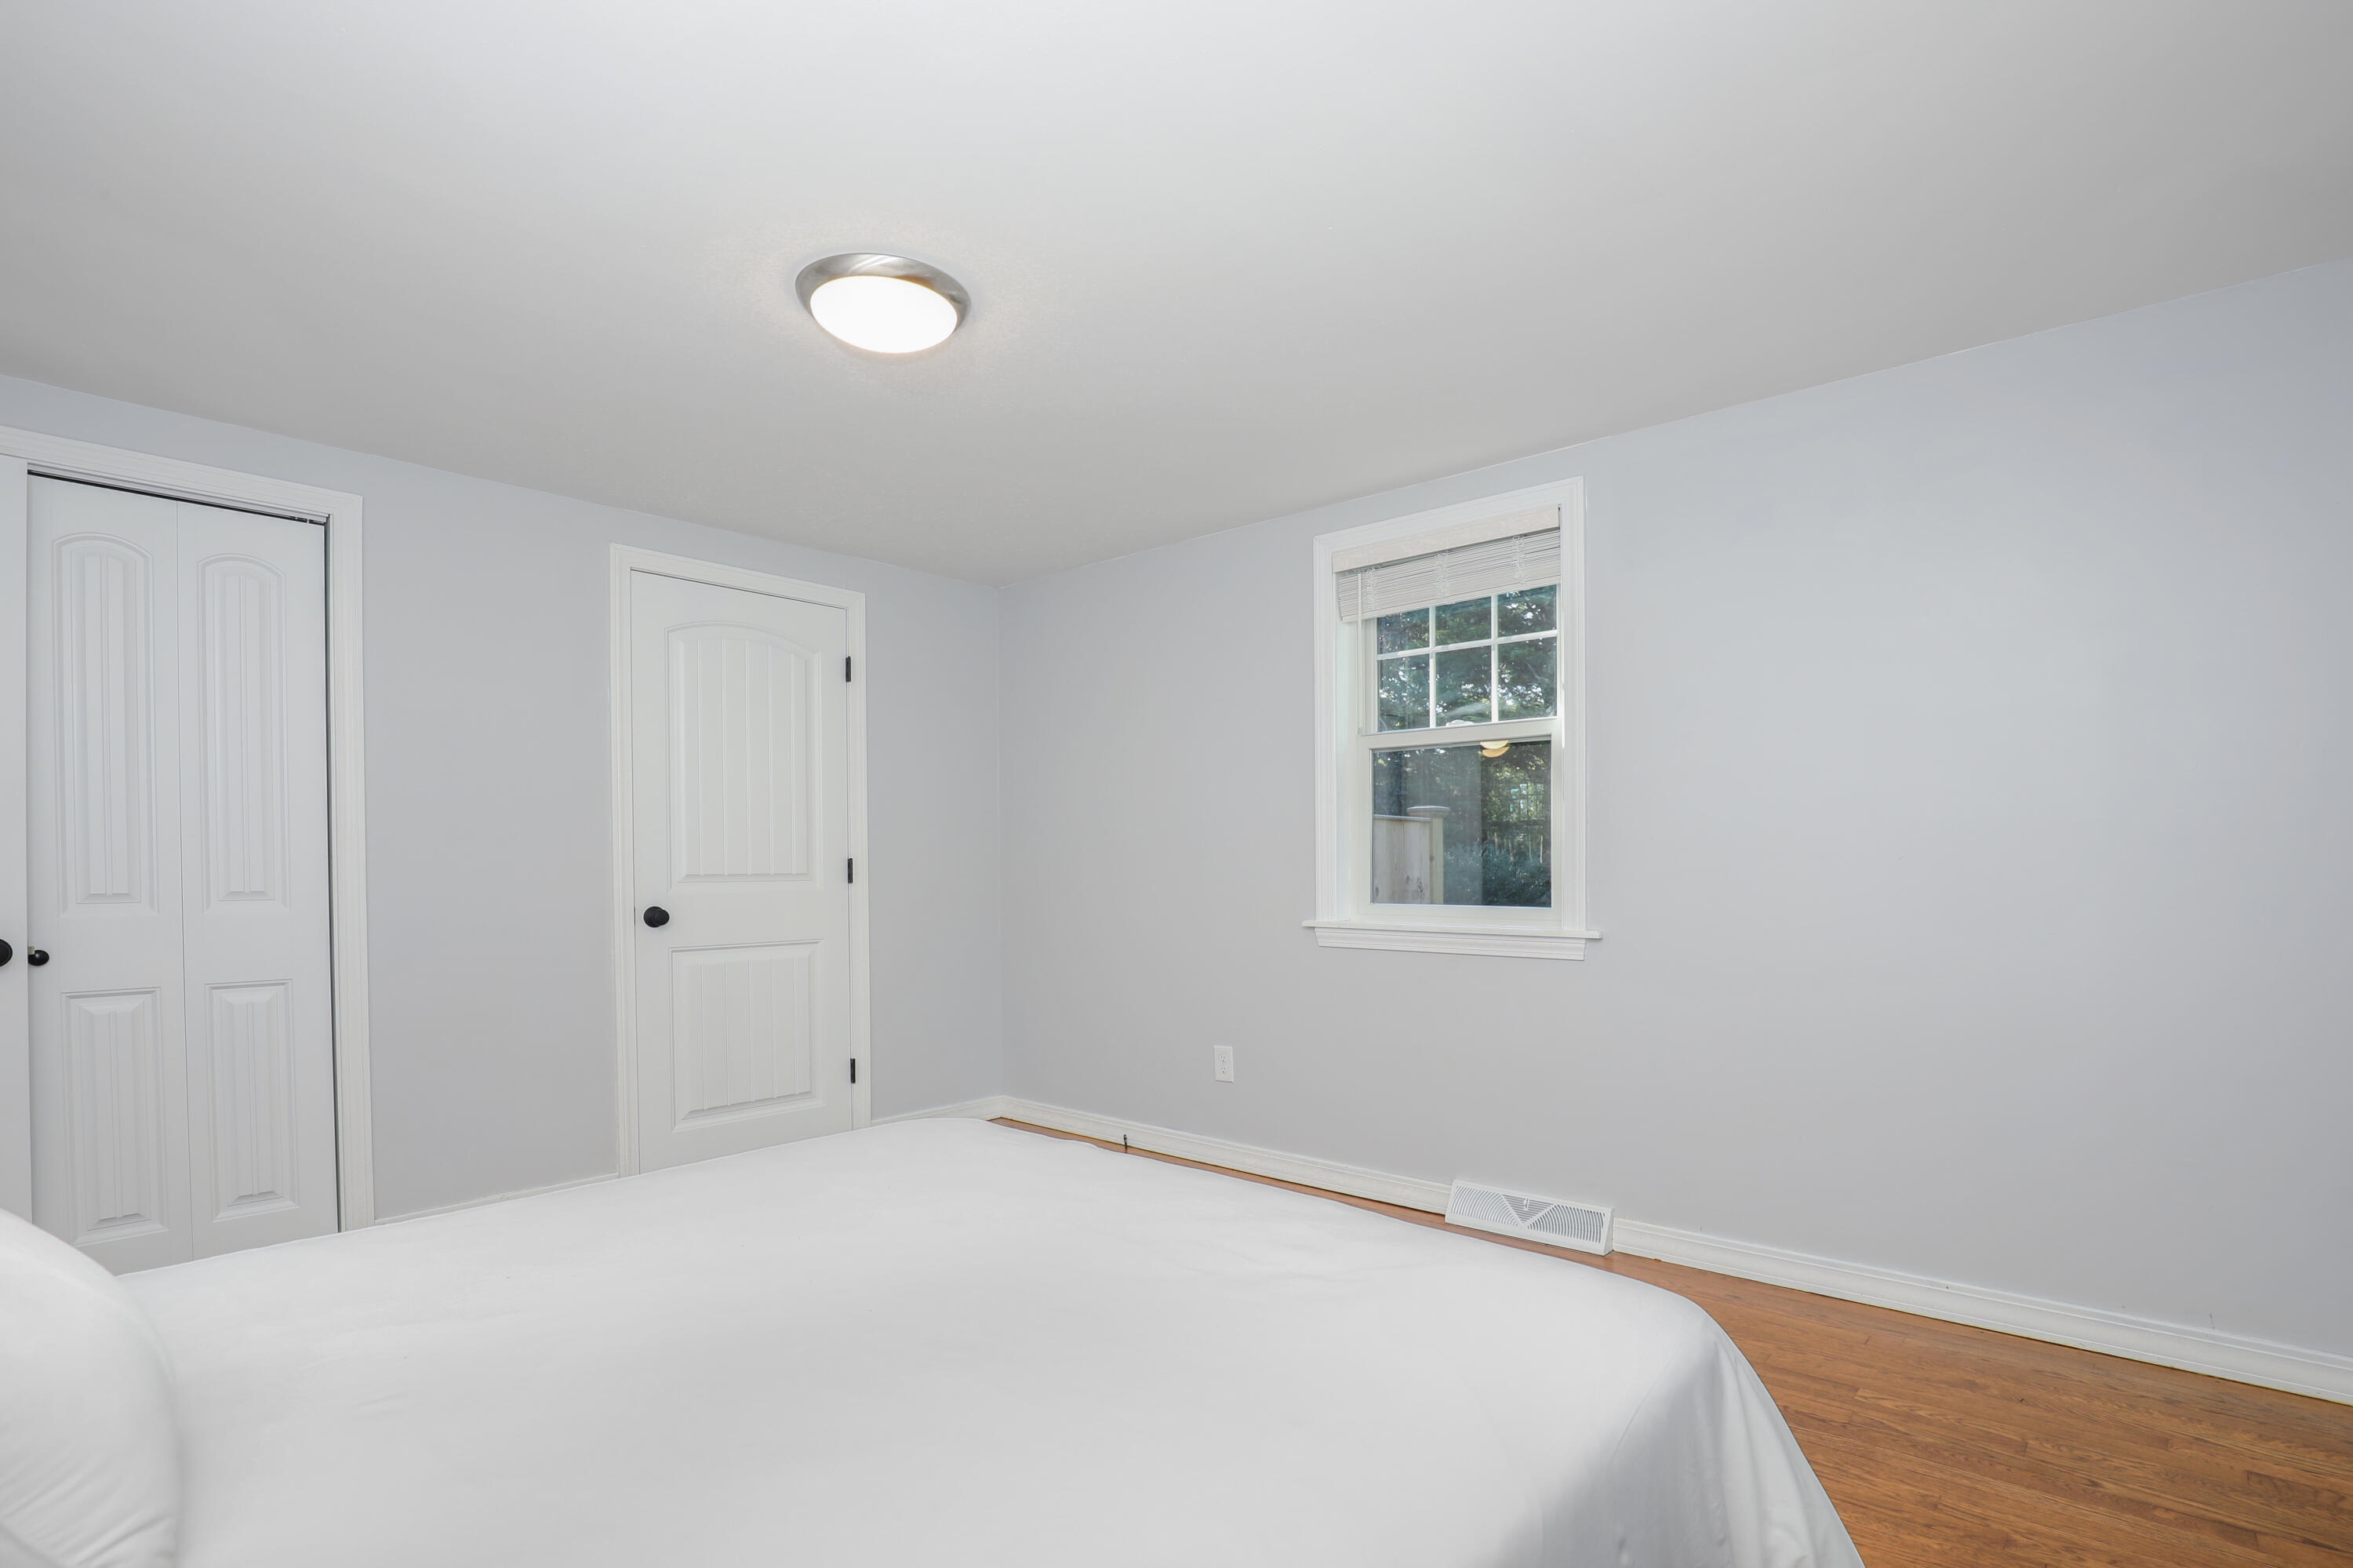 9 Grouse Lane, Hyannis, MA photo 12